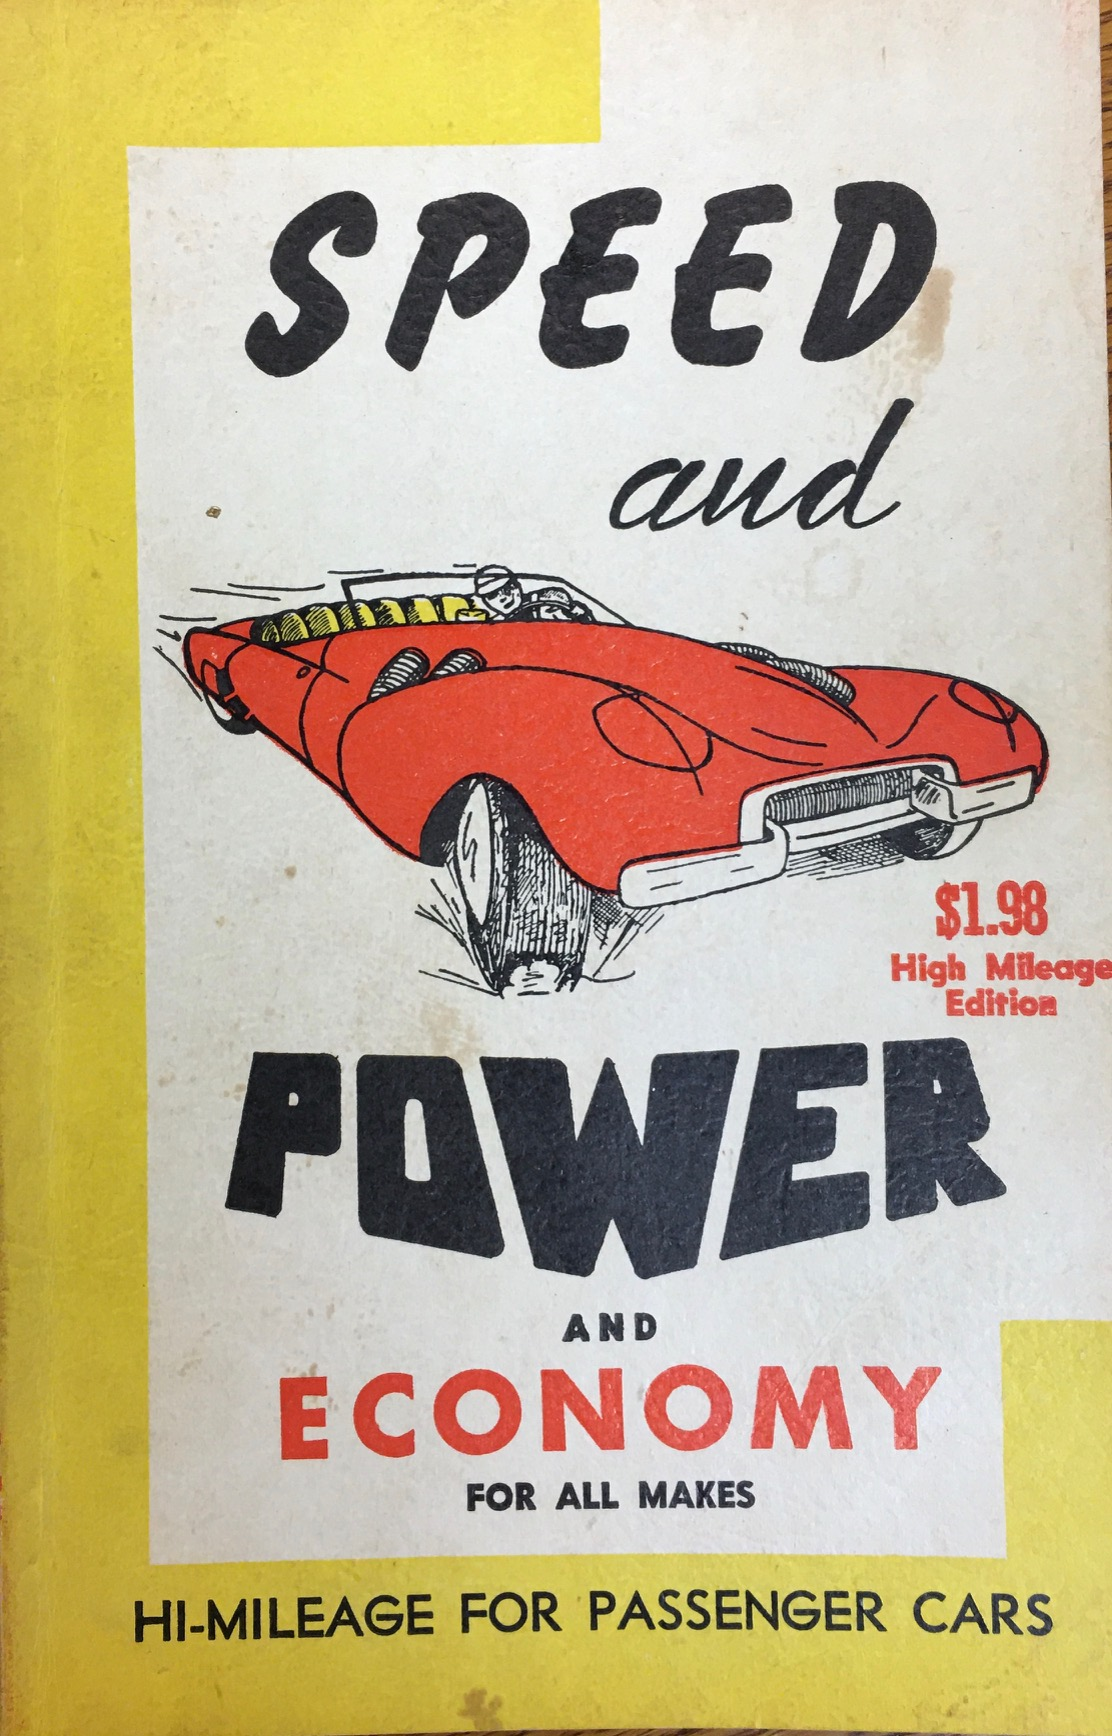 Image for Speed and Power Handbook: Revealing Secrets of the Speedway Champions, Hi-Mileage Tricks of the Master Mechanics (Special Library Edition)